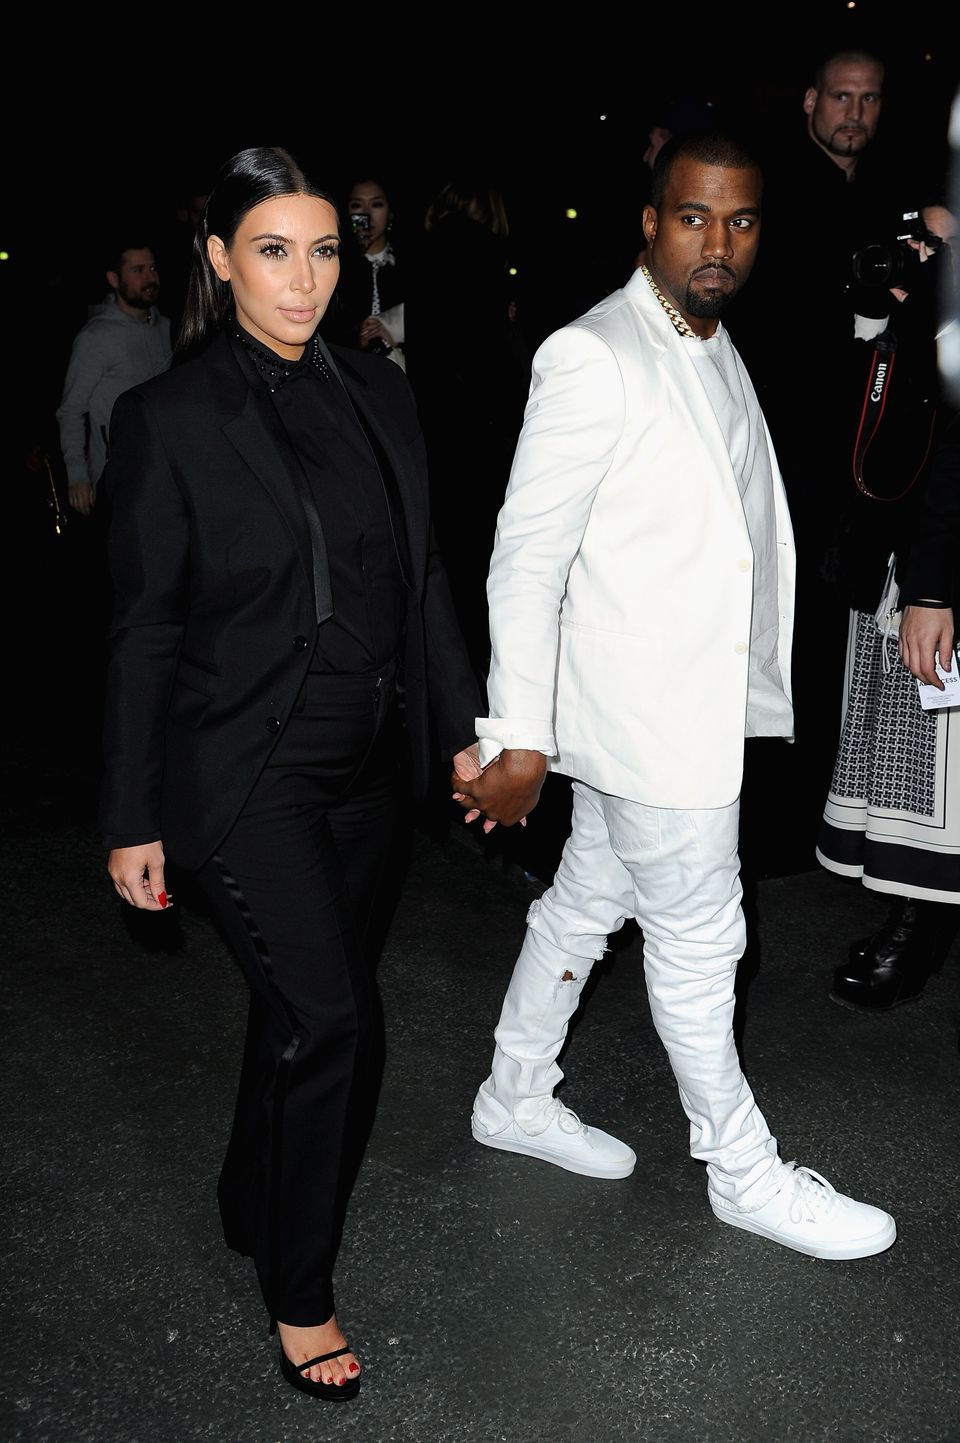 PARIS, FRANCE - MARCH 03:  Kim Kardashian and Kanye West attend Givenchy  Fall/Winter 2013 Ready-to-Wear show as part of Pari